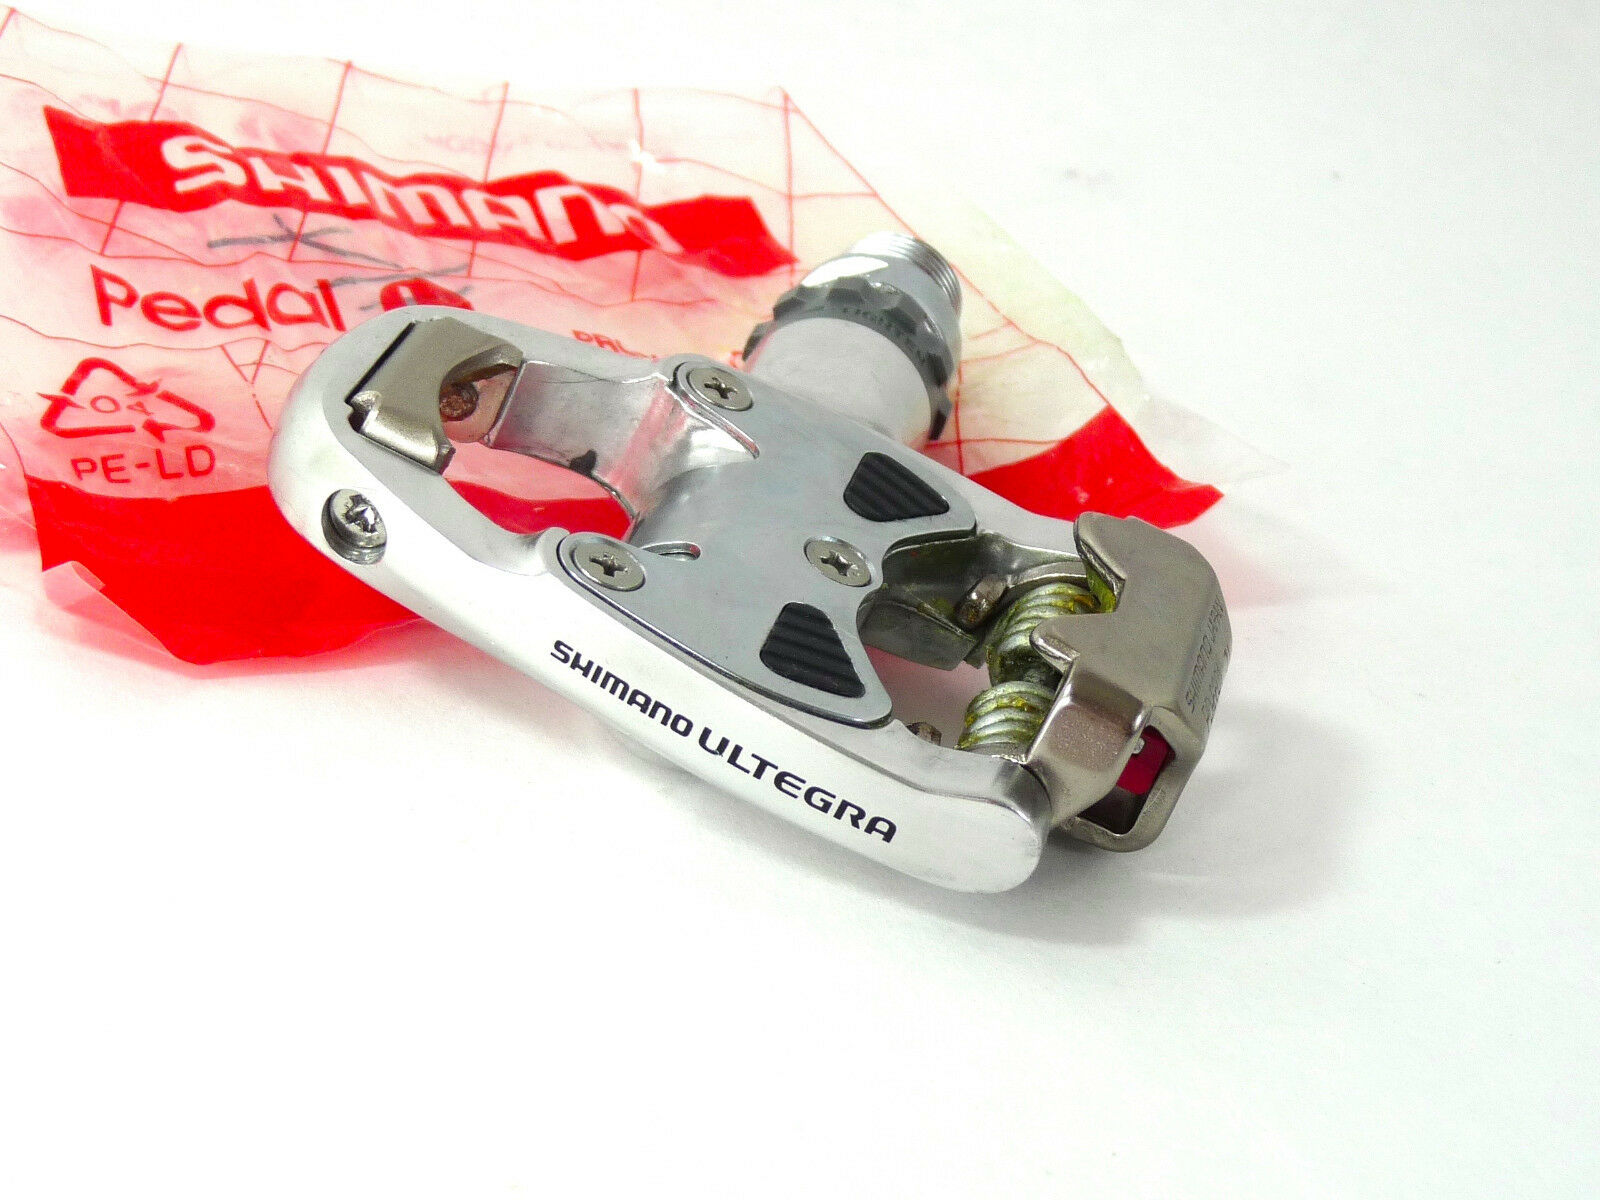 Shimano Ultegra LEFT Pedal Clipless 6601 Vintage Racing Bicycle SPARE NOS